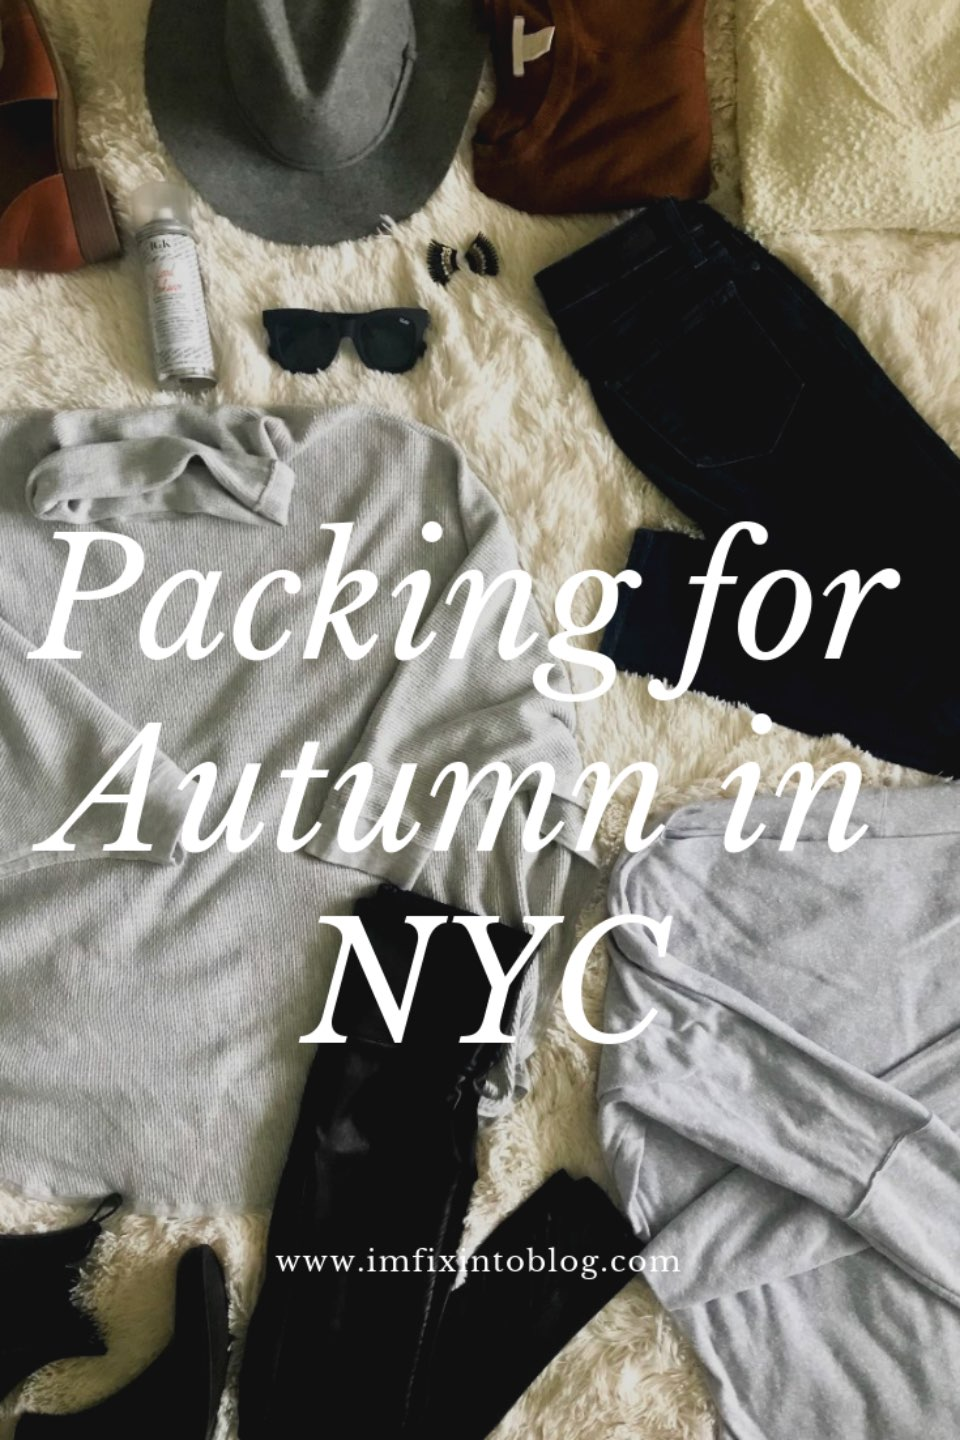 Our Packing List for New York City - I'm Fixin' To - @mbg0112